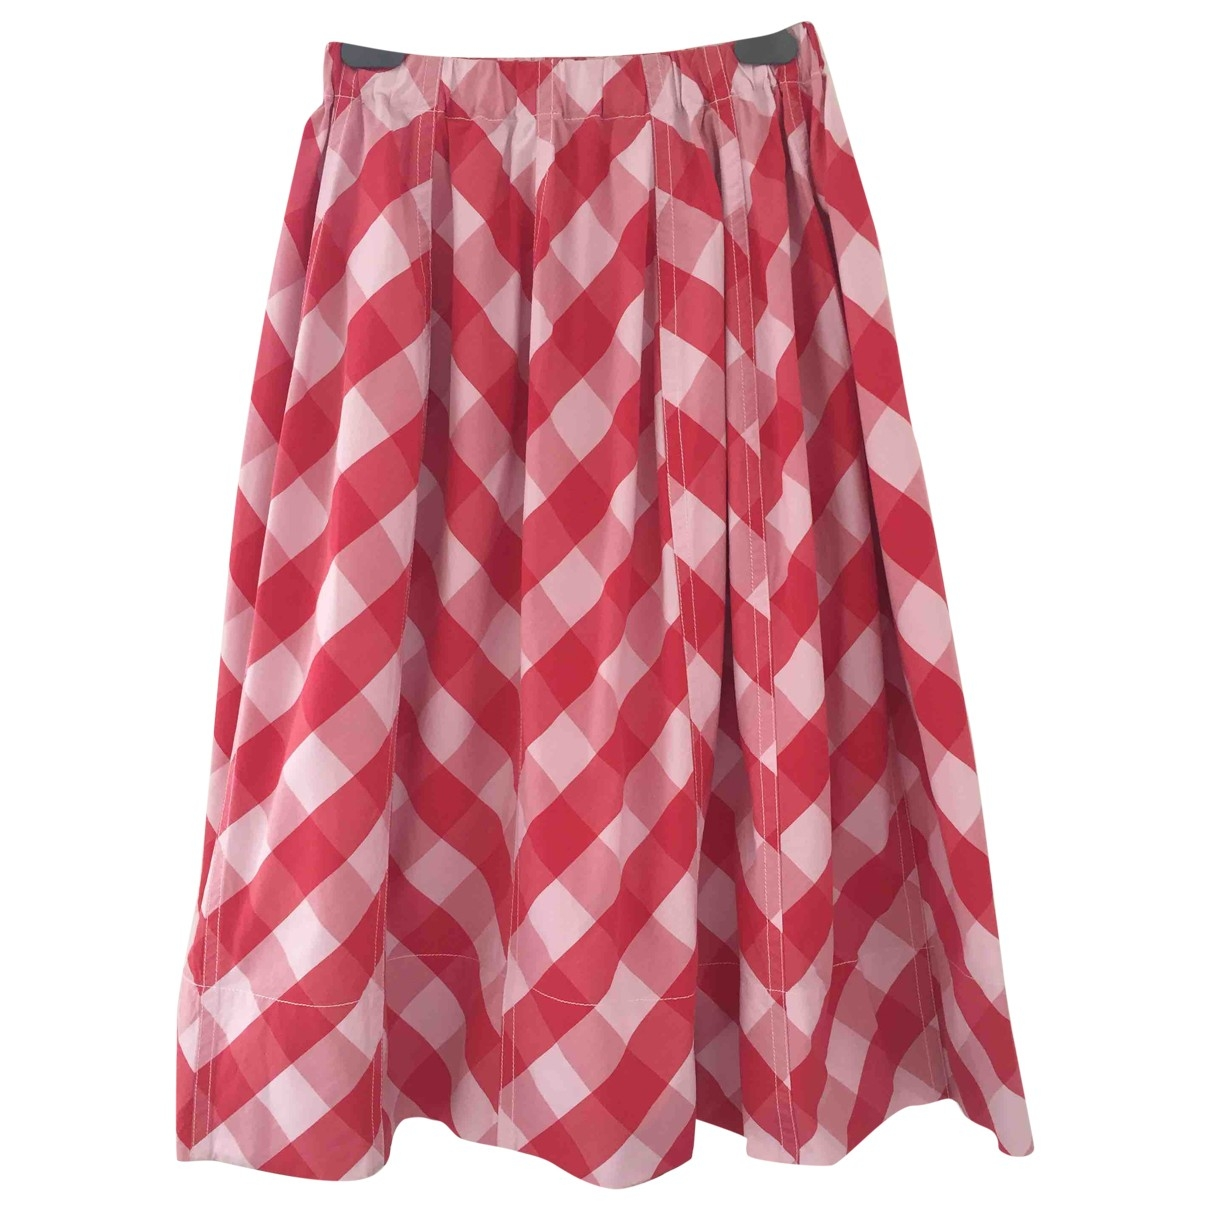 Marni \N Cotton skirt for Women 40 IT